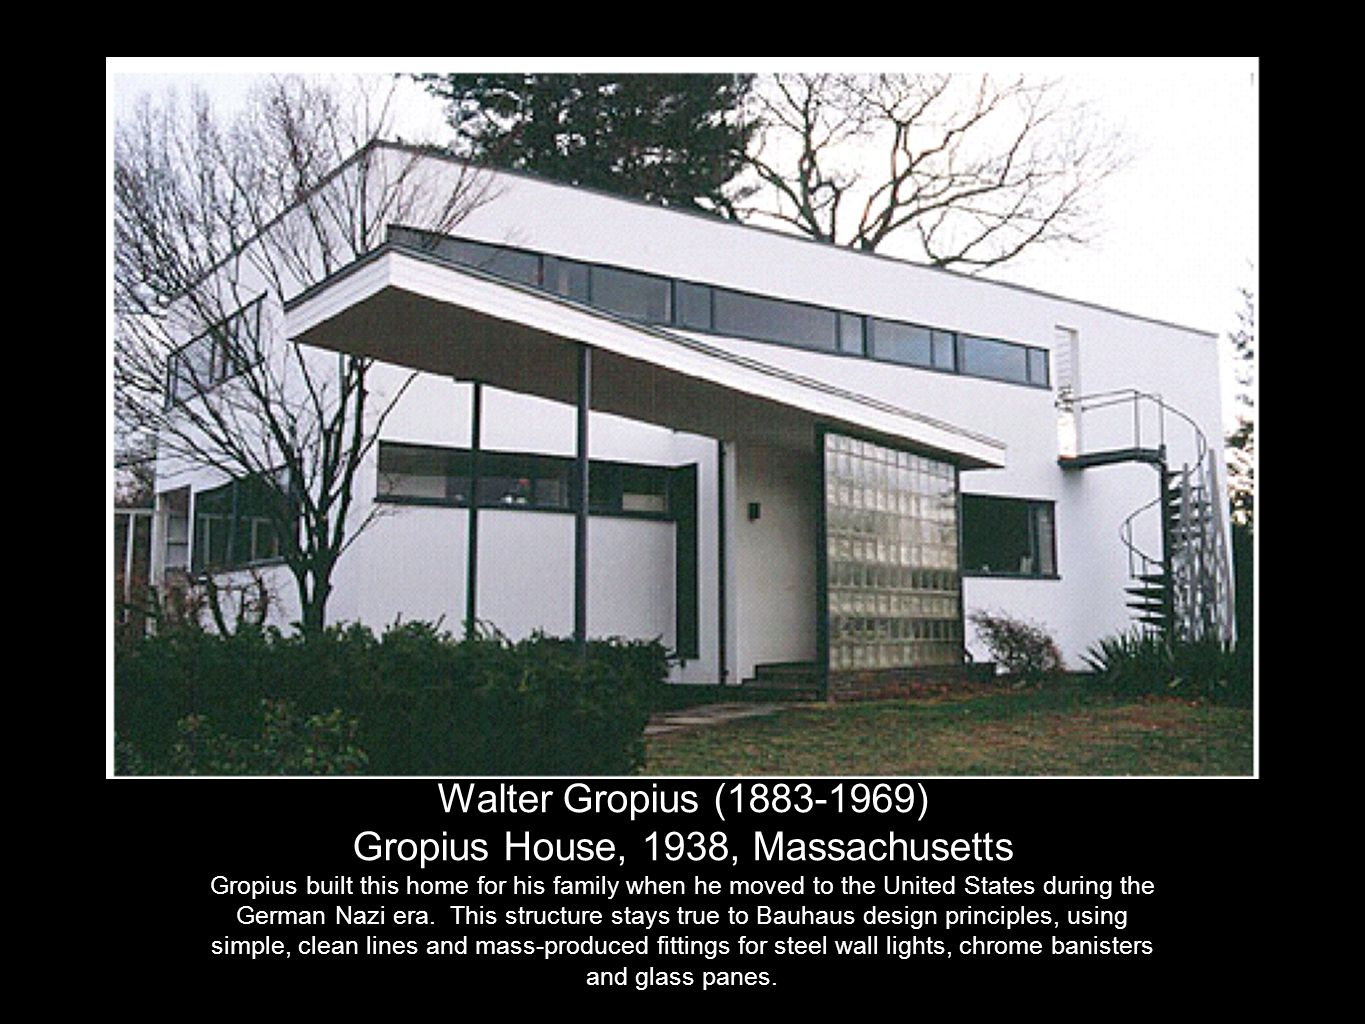 Gropius House, 1938, Massachusetts